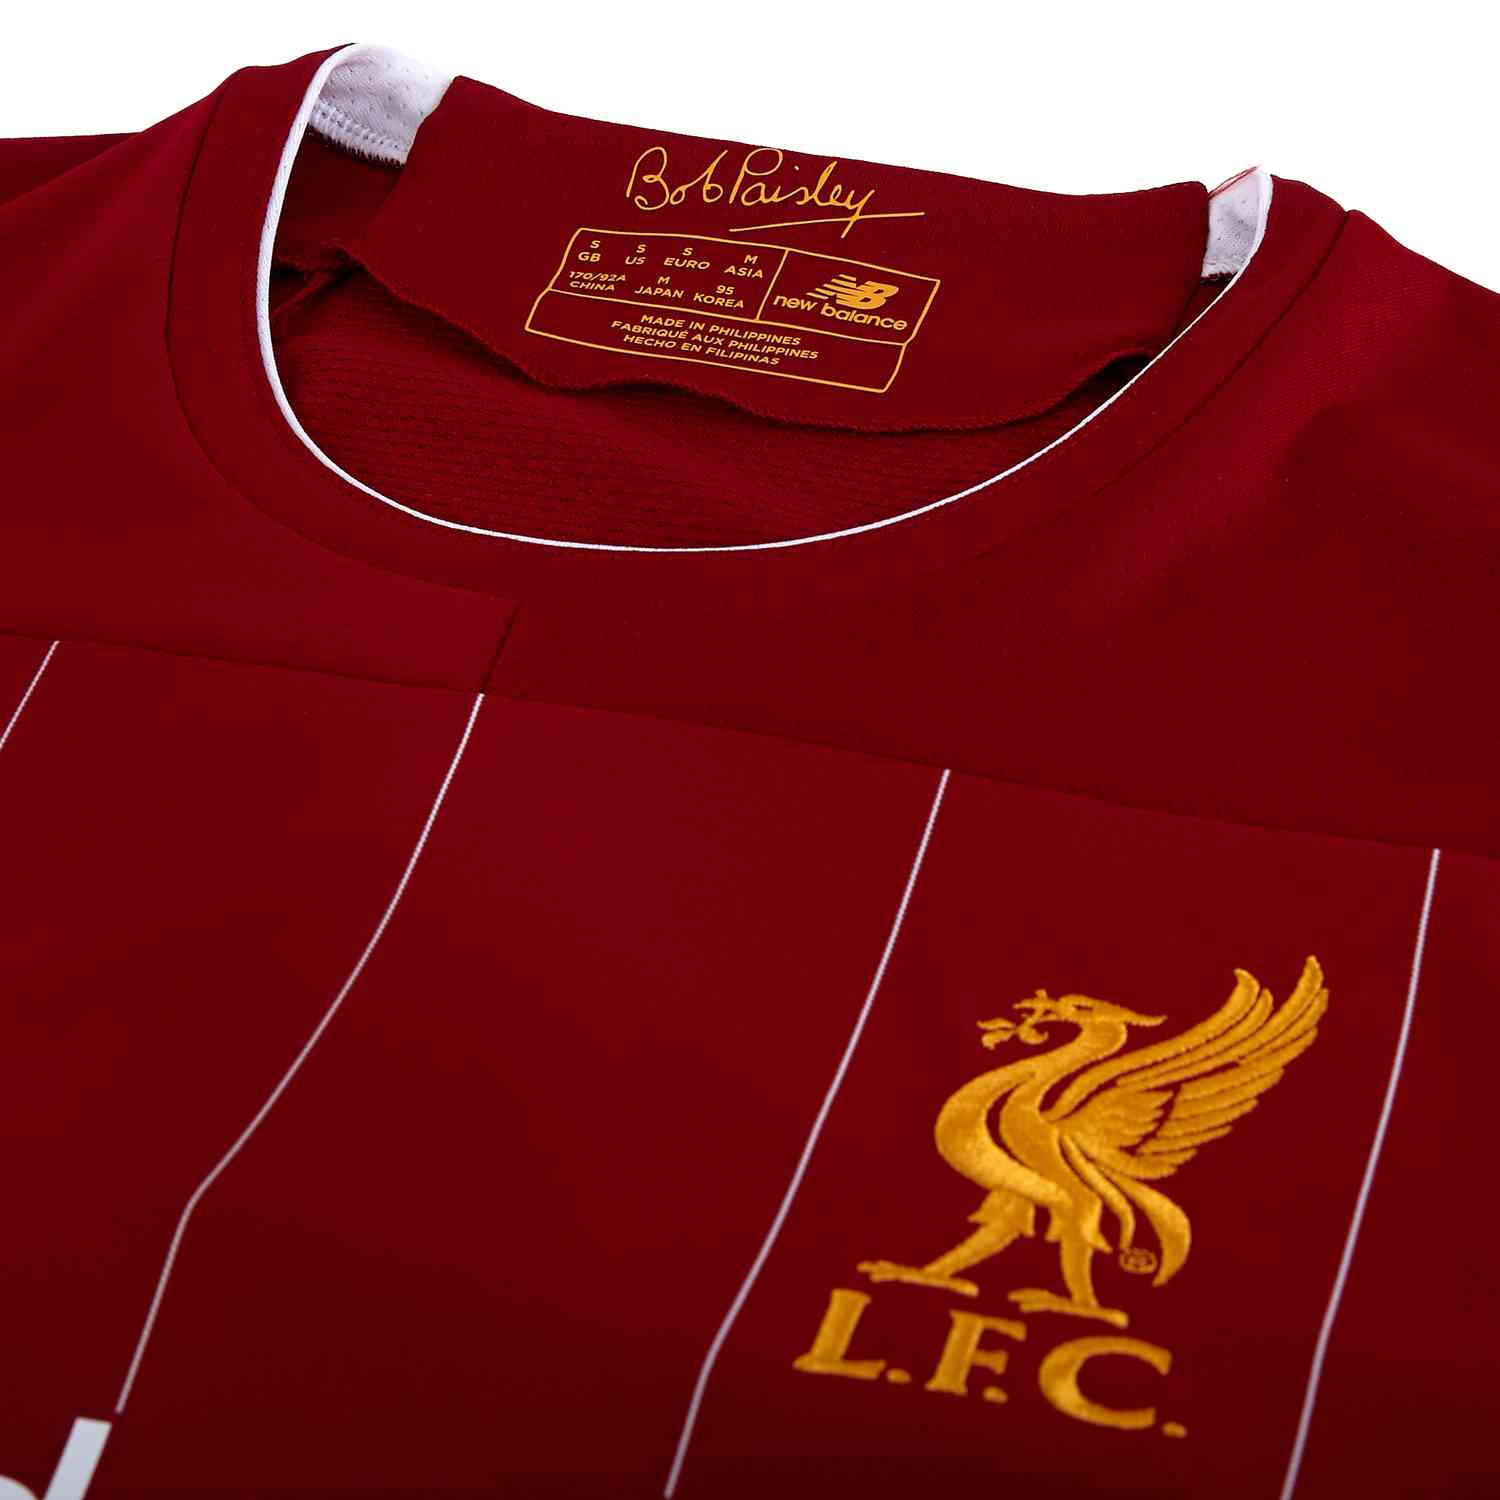 801452bad 2019/20 Kids New Balance Mohamed Salah Liverpool Home Jersey - SoccerPro